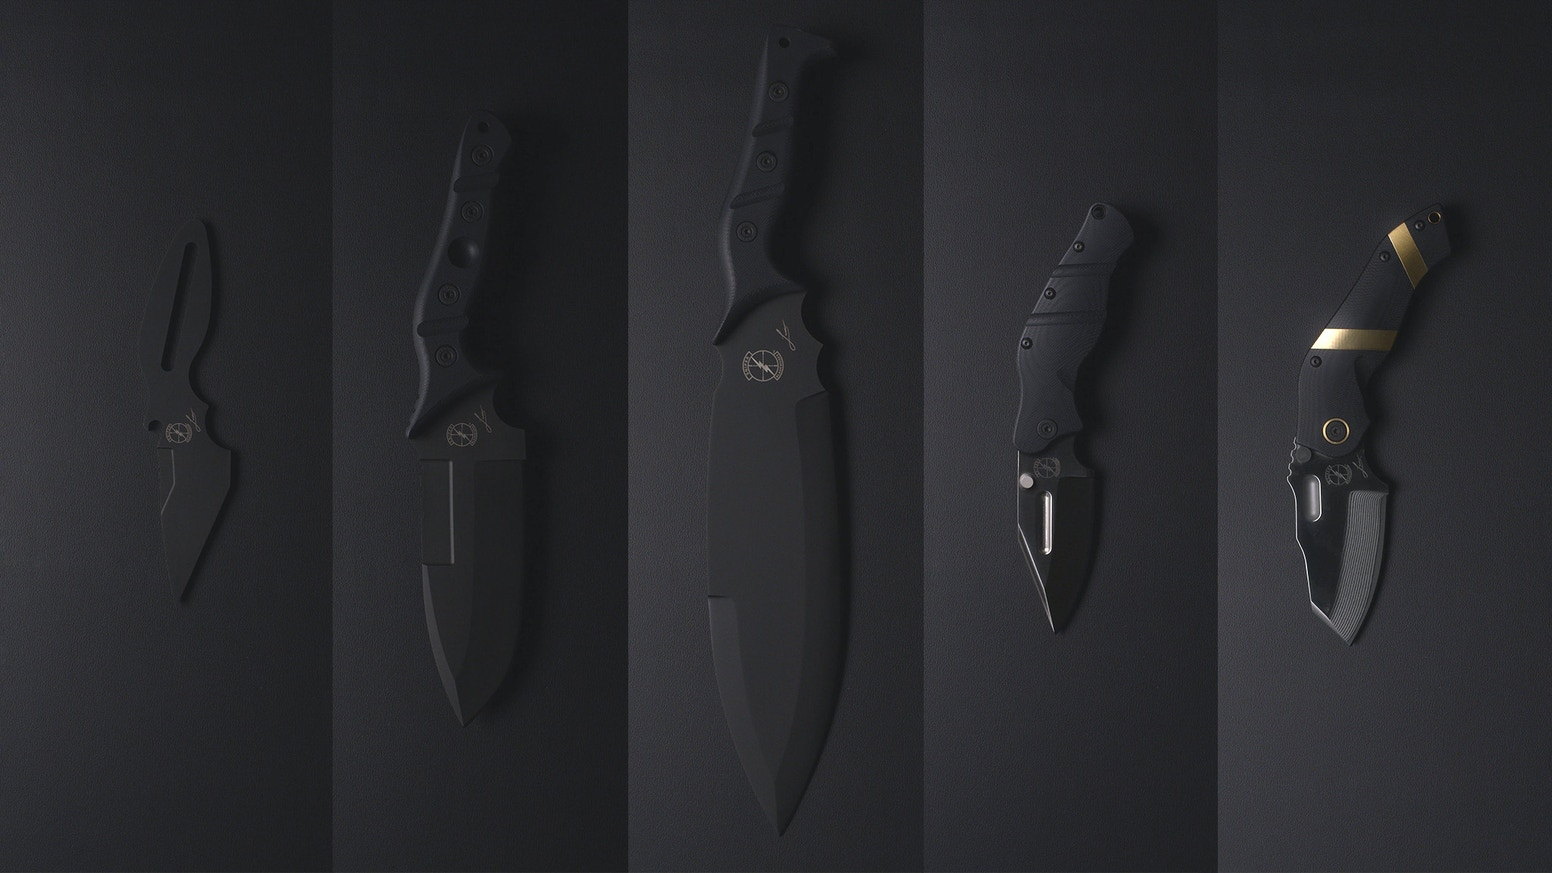 Unsurpassed quality and unbeatable prices, by acclaimed knife designer Lance Abernathy. Everyday carry, camping, and survival knives.